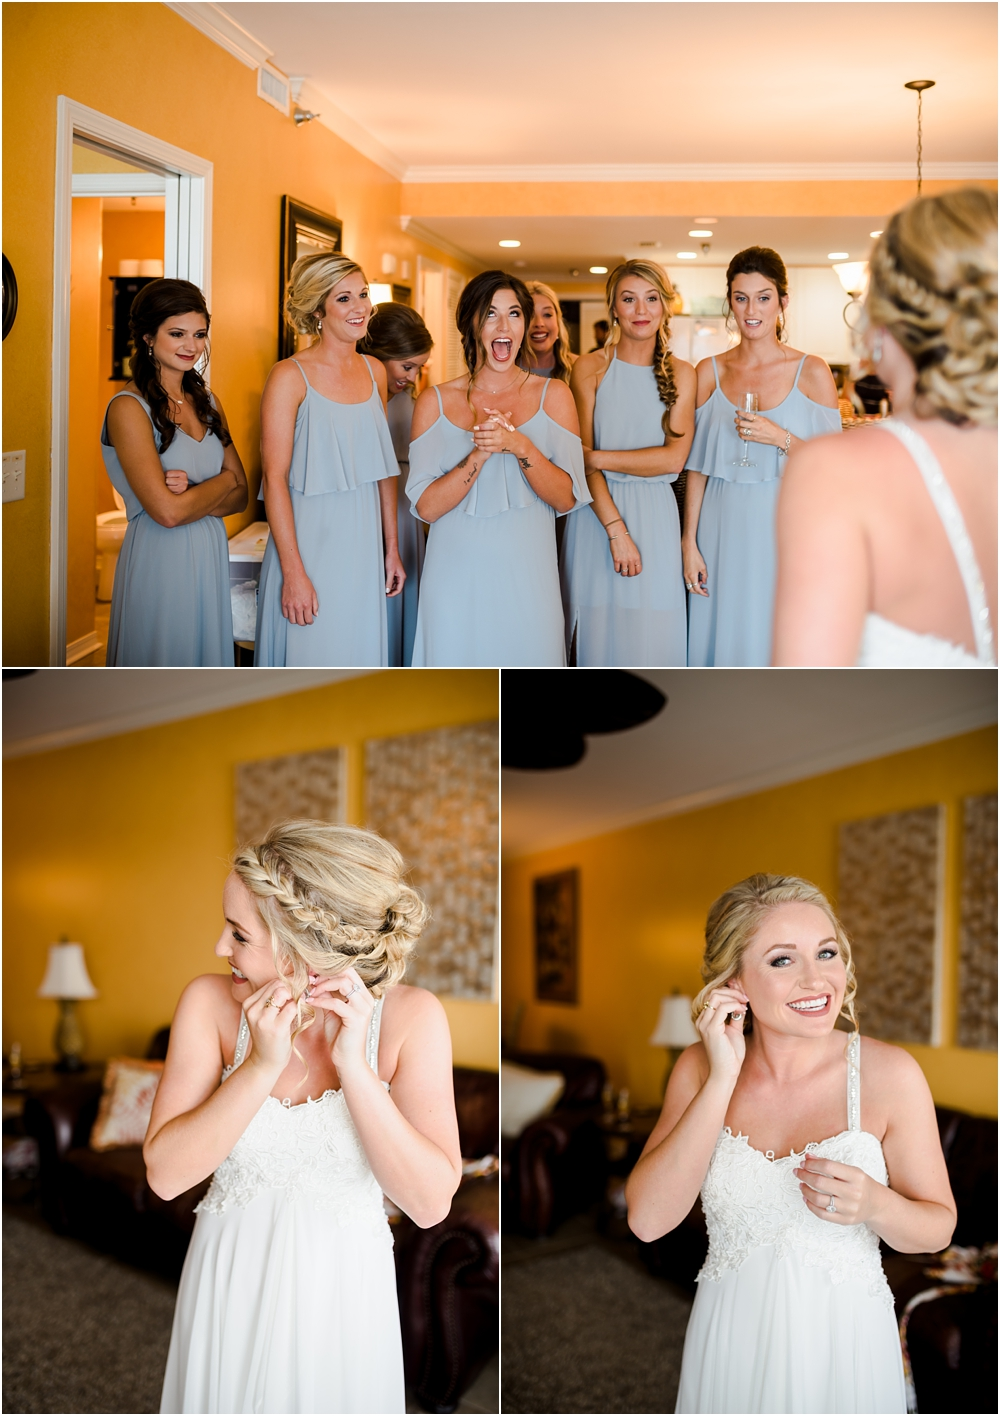 dillard-florida-wedding-photographer-panama-city-beach-dothan-tallahassee-kiersten-grant-photography-36.jpg